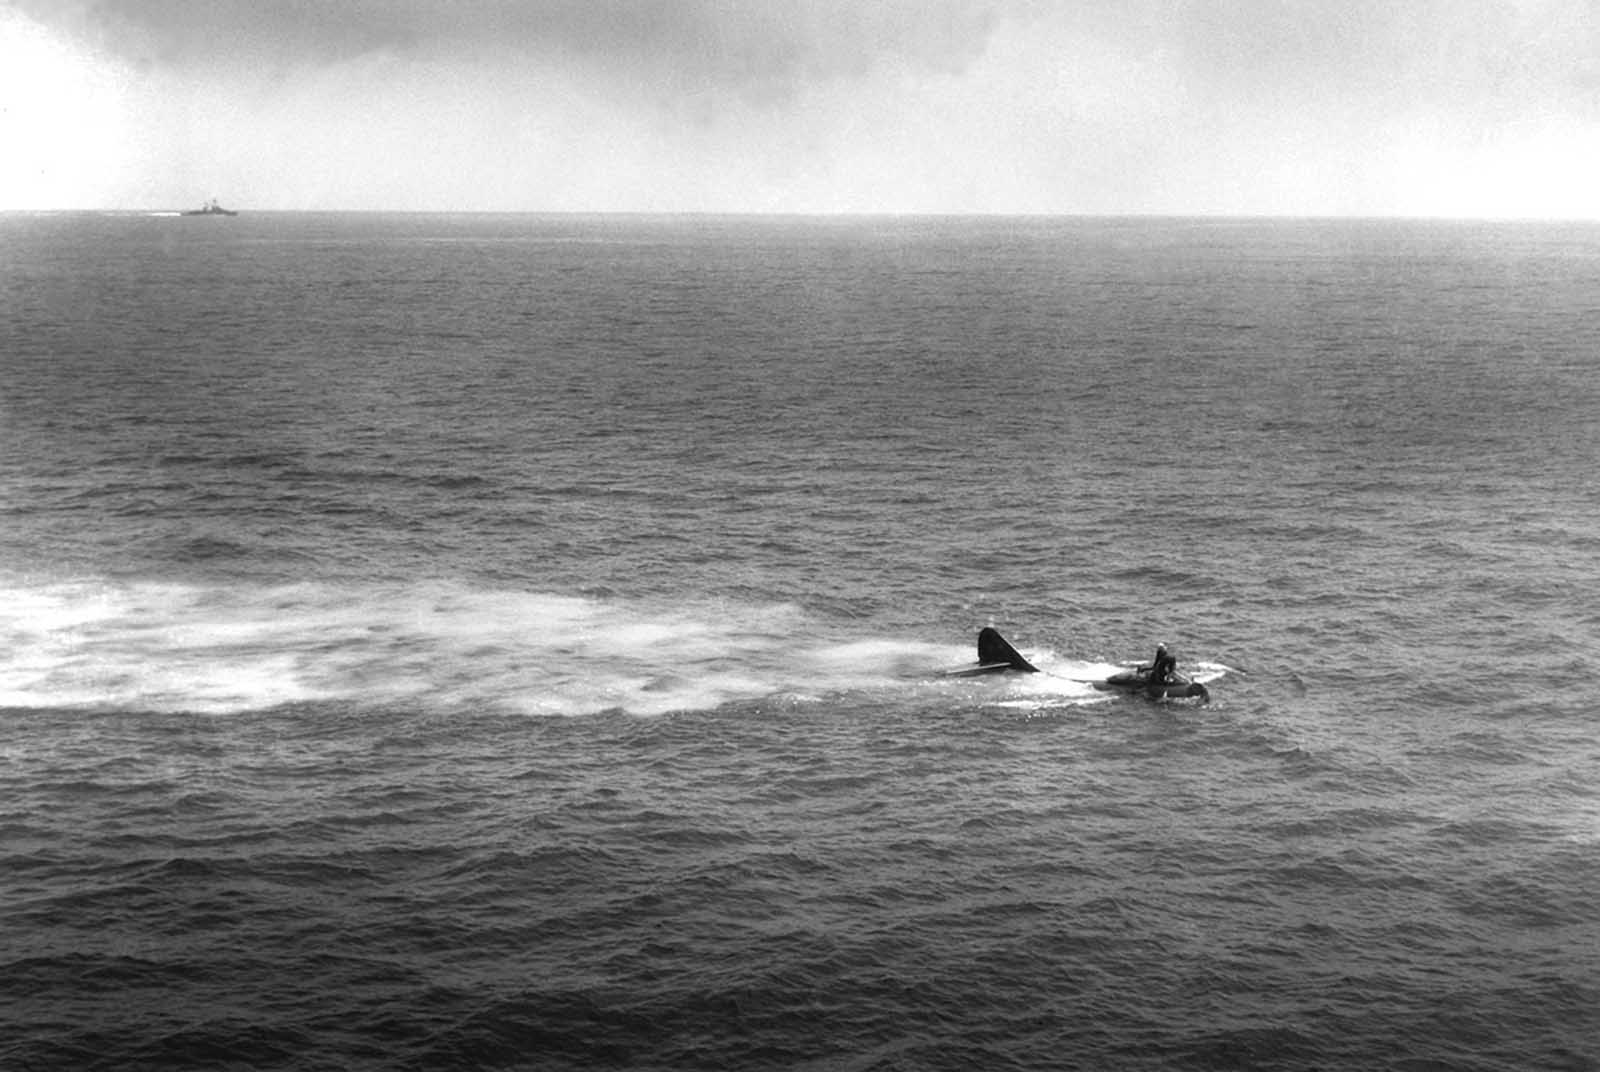 F9F-2 floating on water after crash over bow of USS Philippine Sea (CV-47) near Korea. Cdr. R. Weymouth stands on the nose of the plane awaiting rescue.